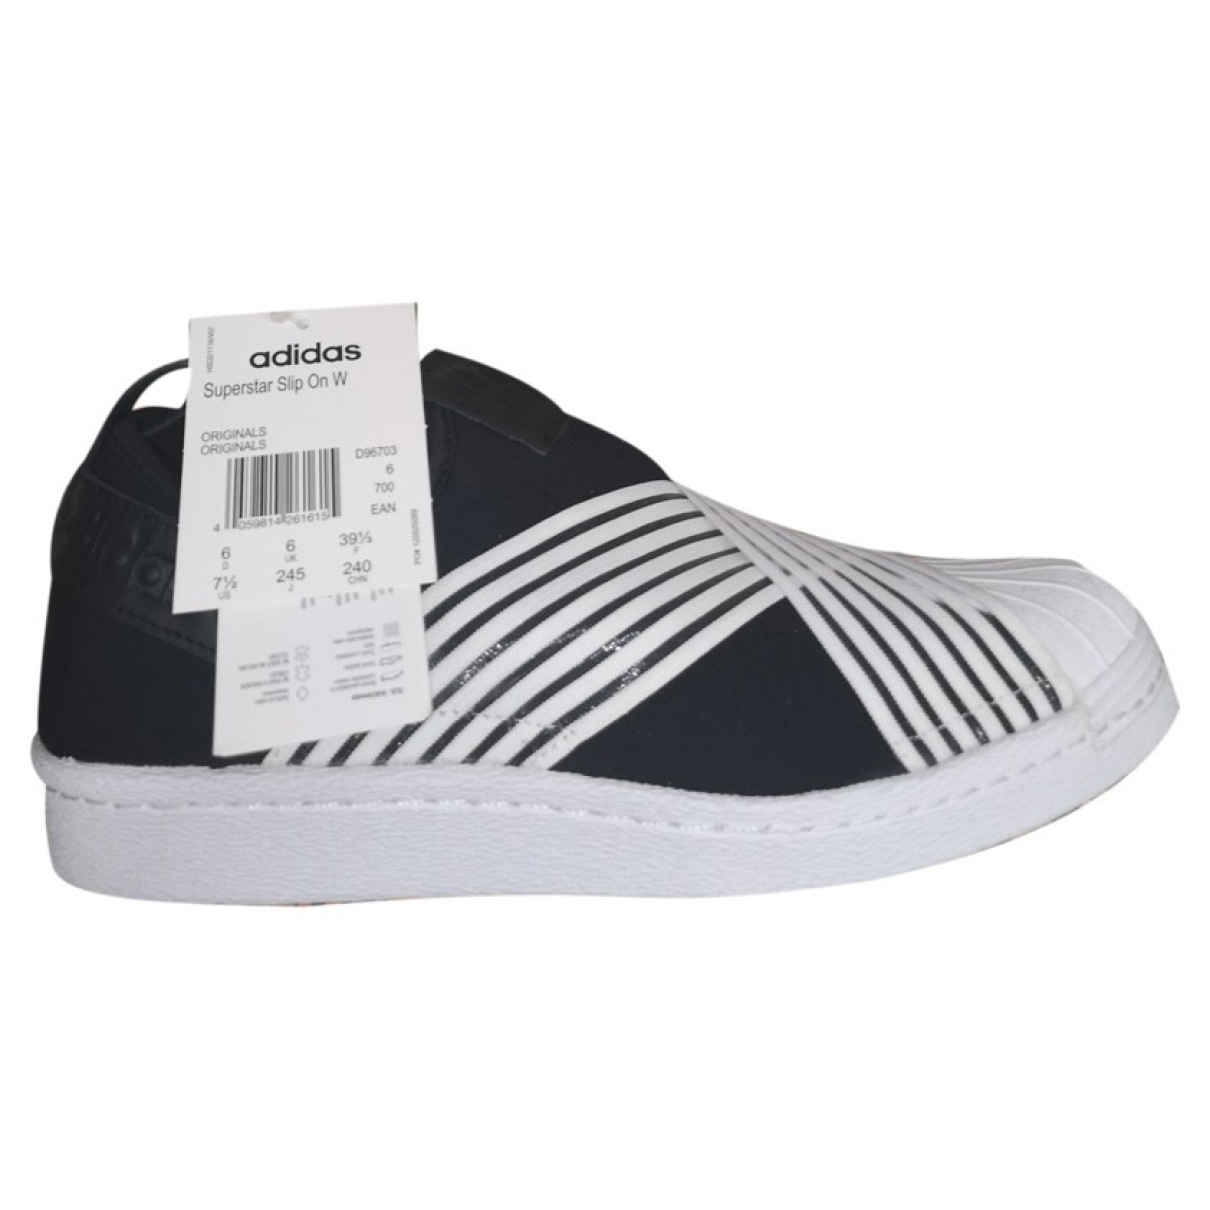 Adidas Superstar Black Rubber Trainers for Women 39 EU